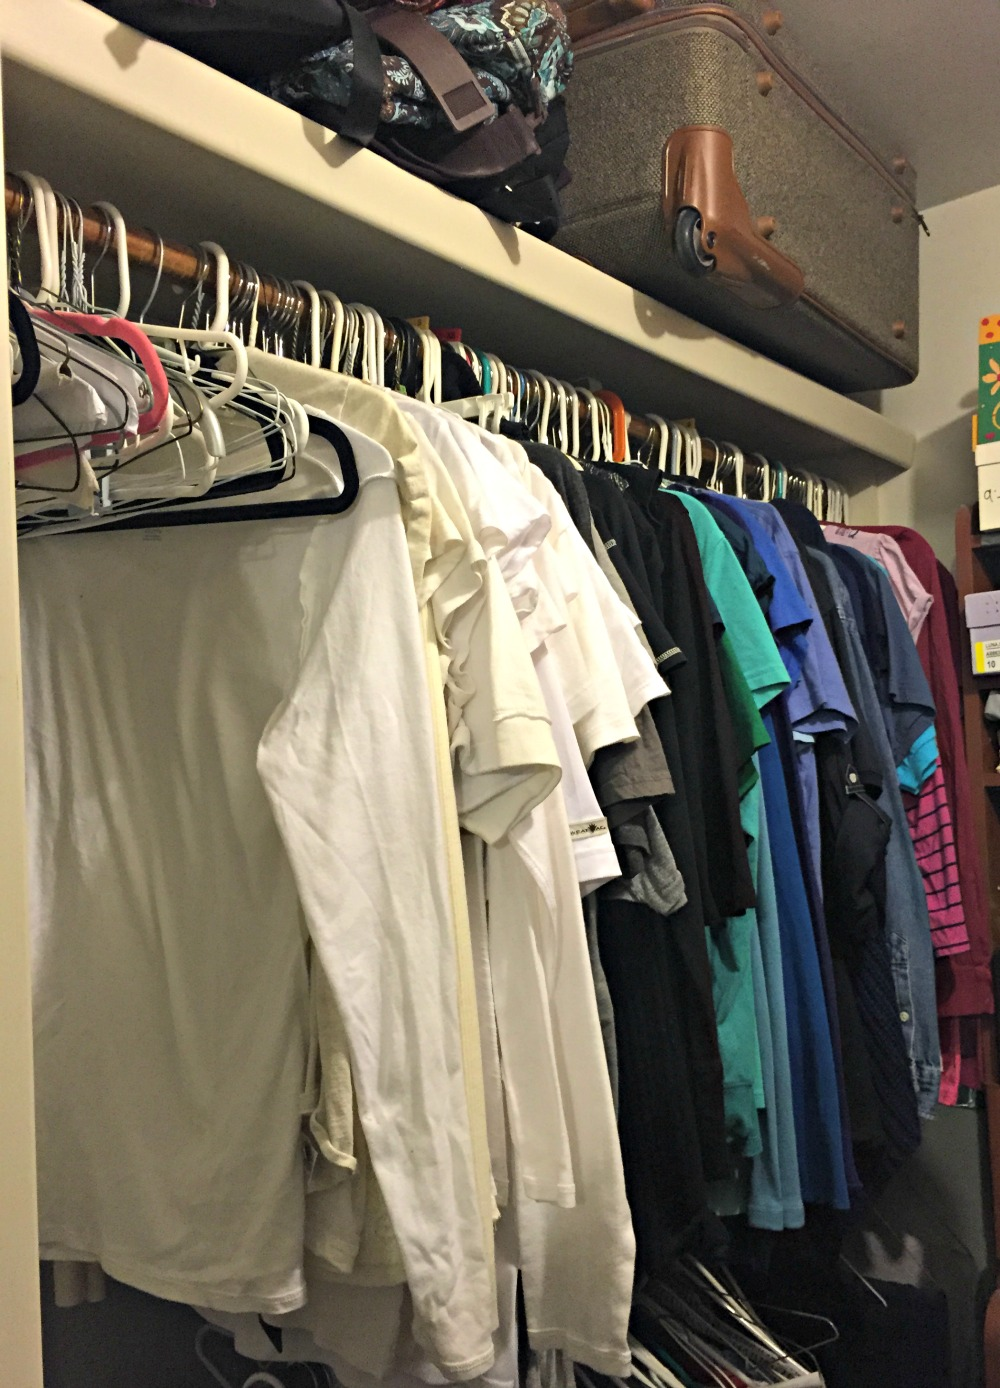 Closet Cleaning 5